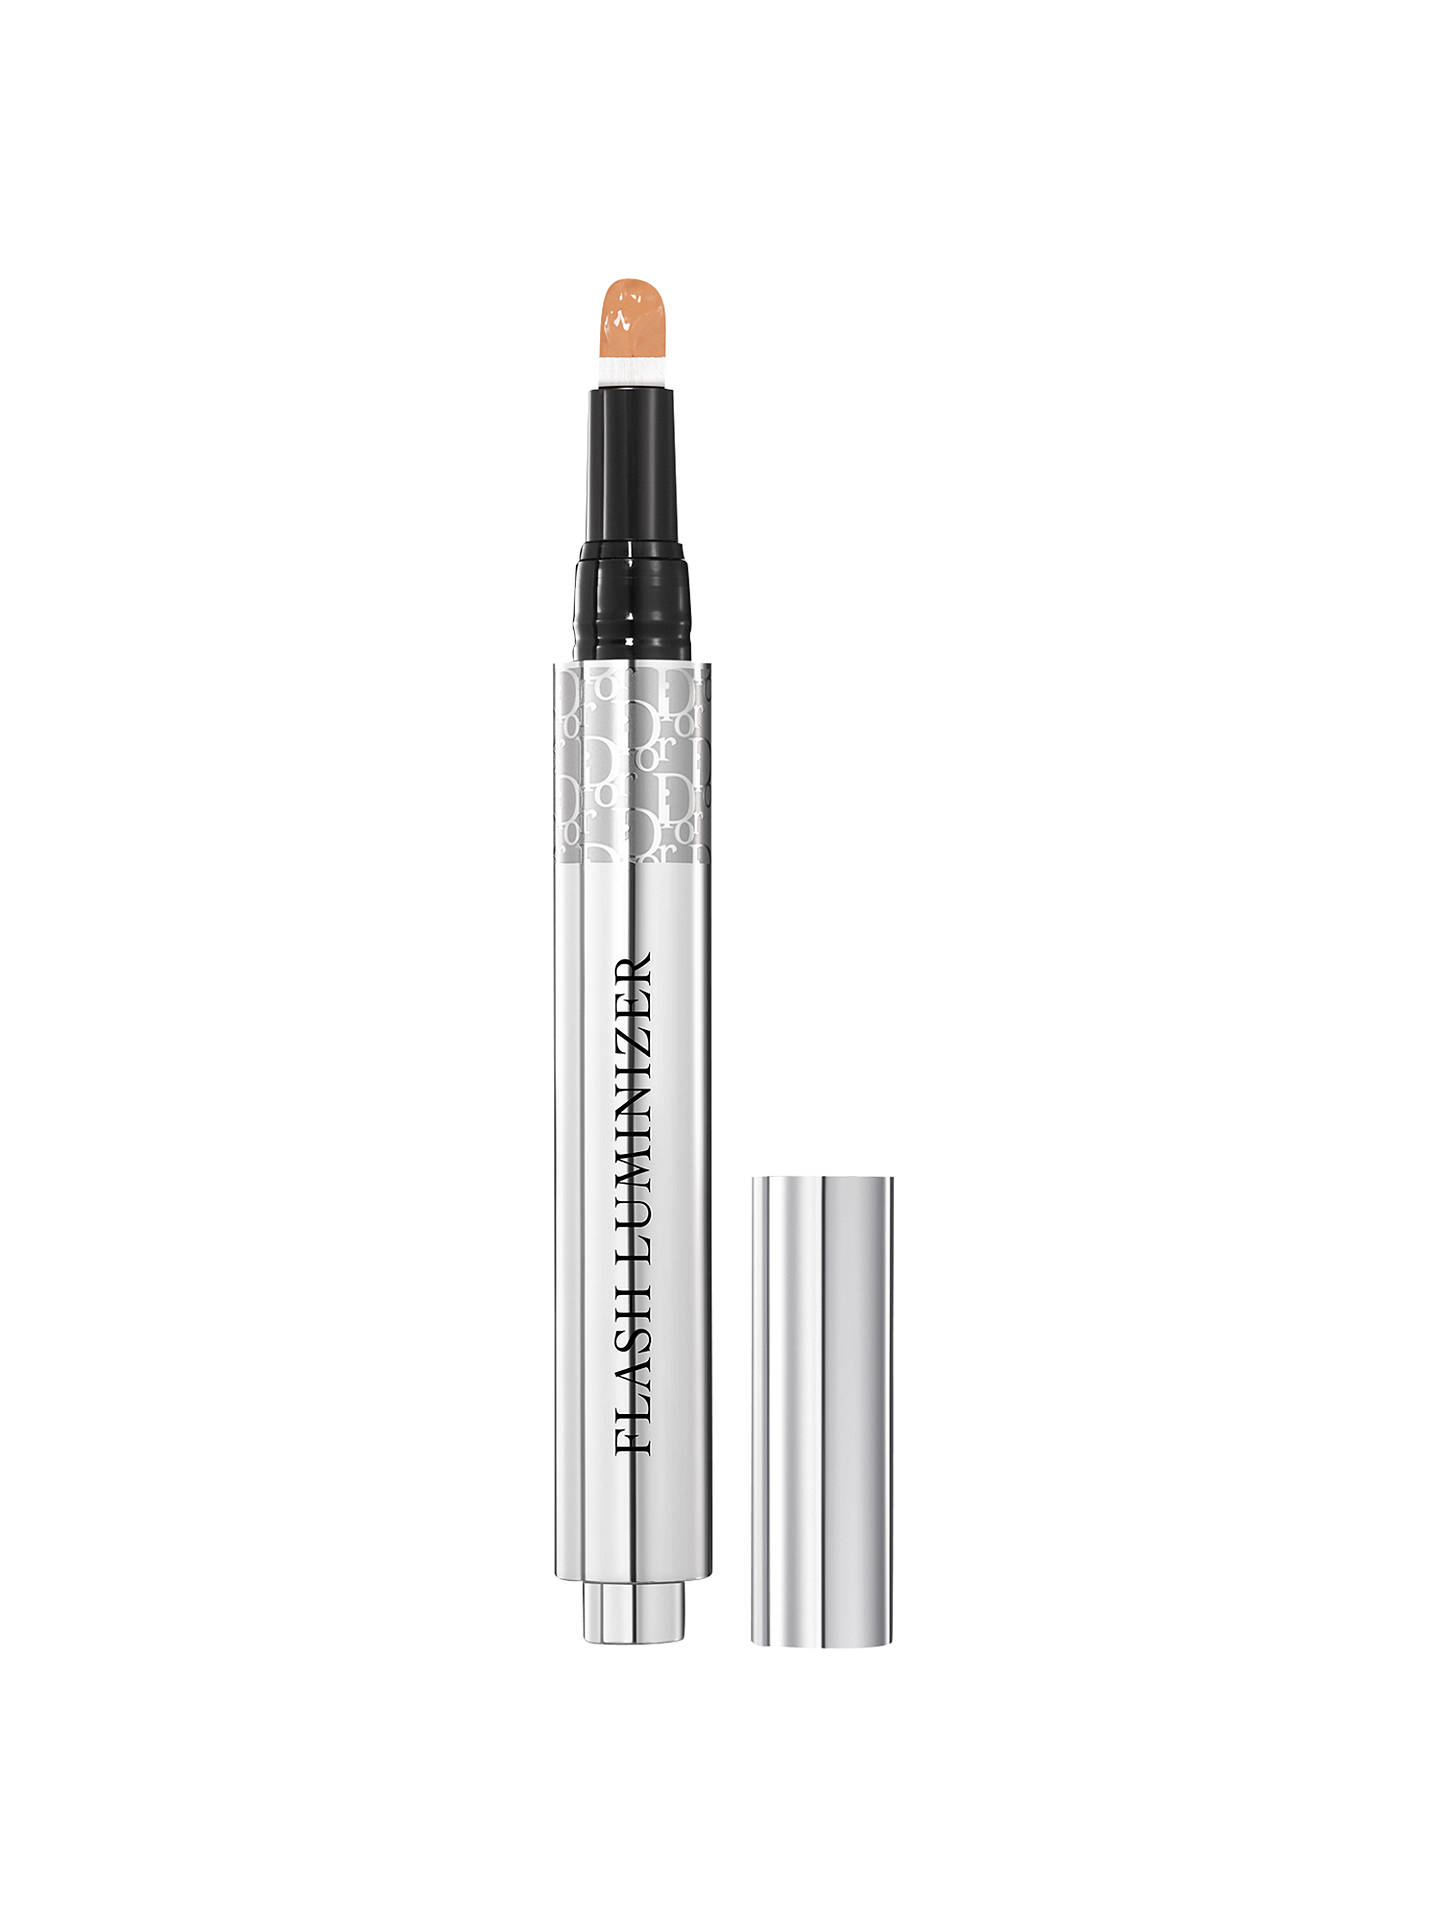 064a31034b71 Dior Backstage Flash Luminizer Radiance Booster Pen at John Lewis ...